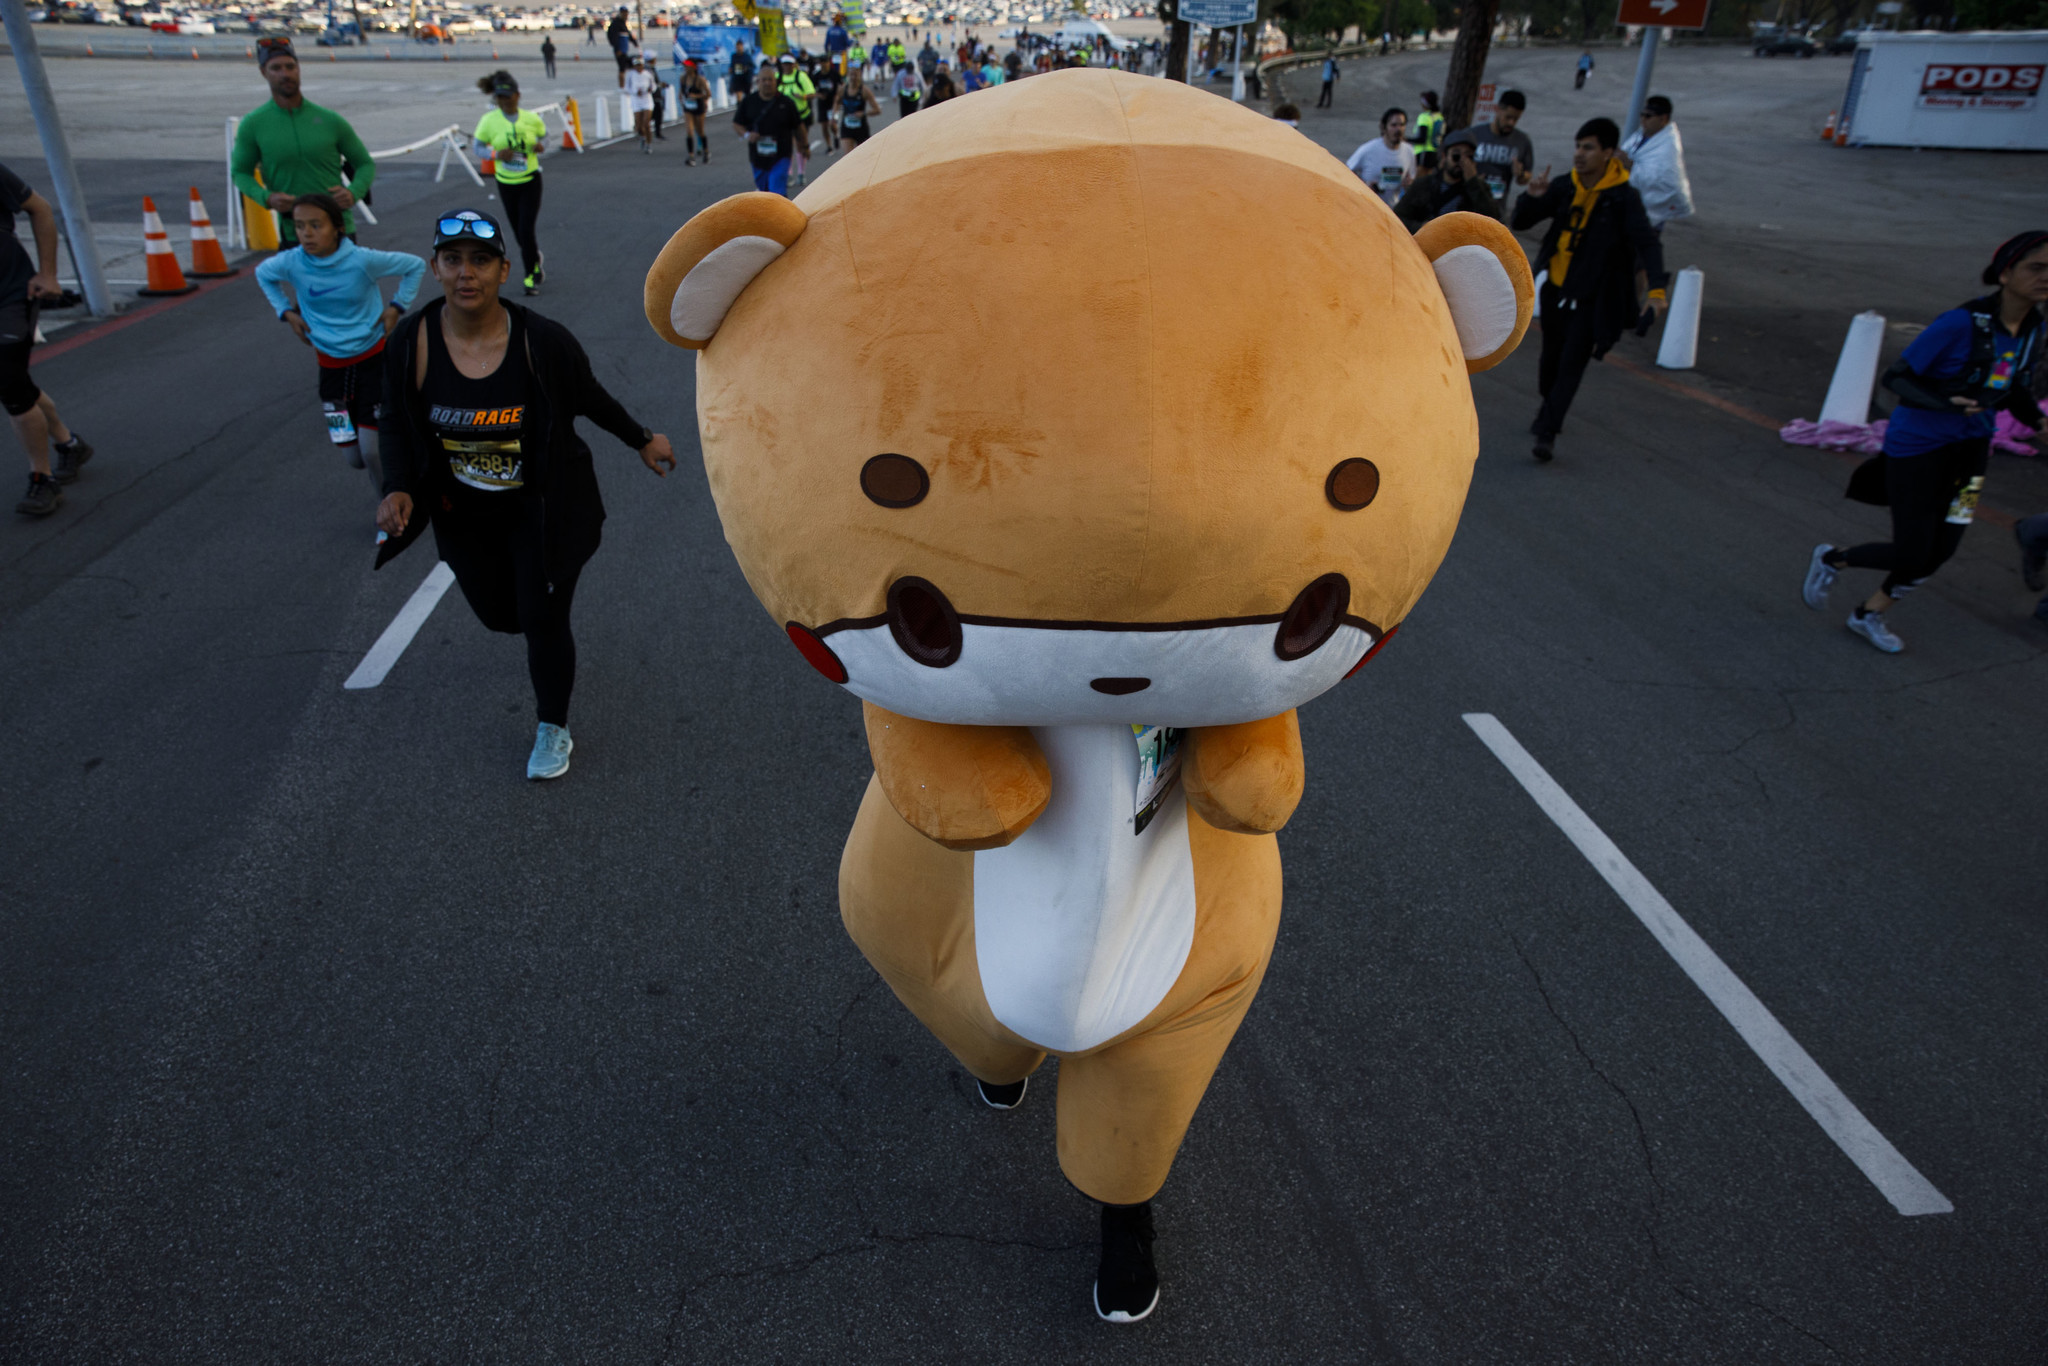 Los Angeles Marathon 2019